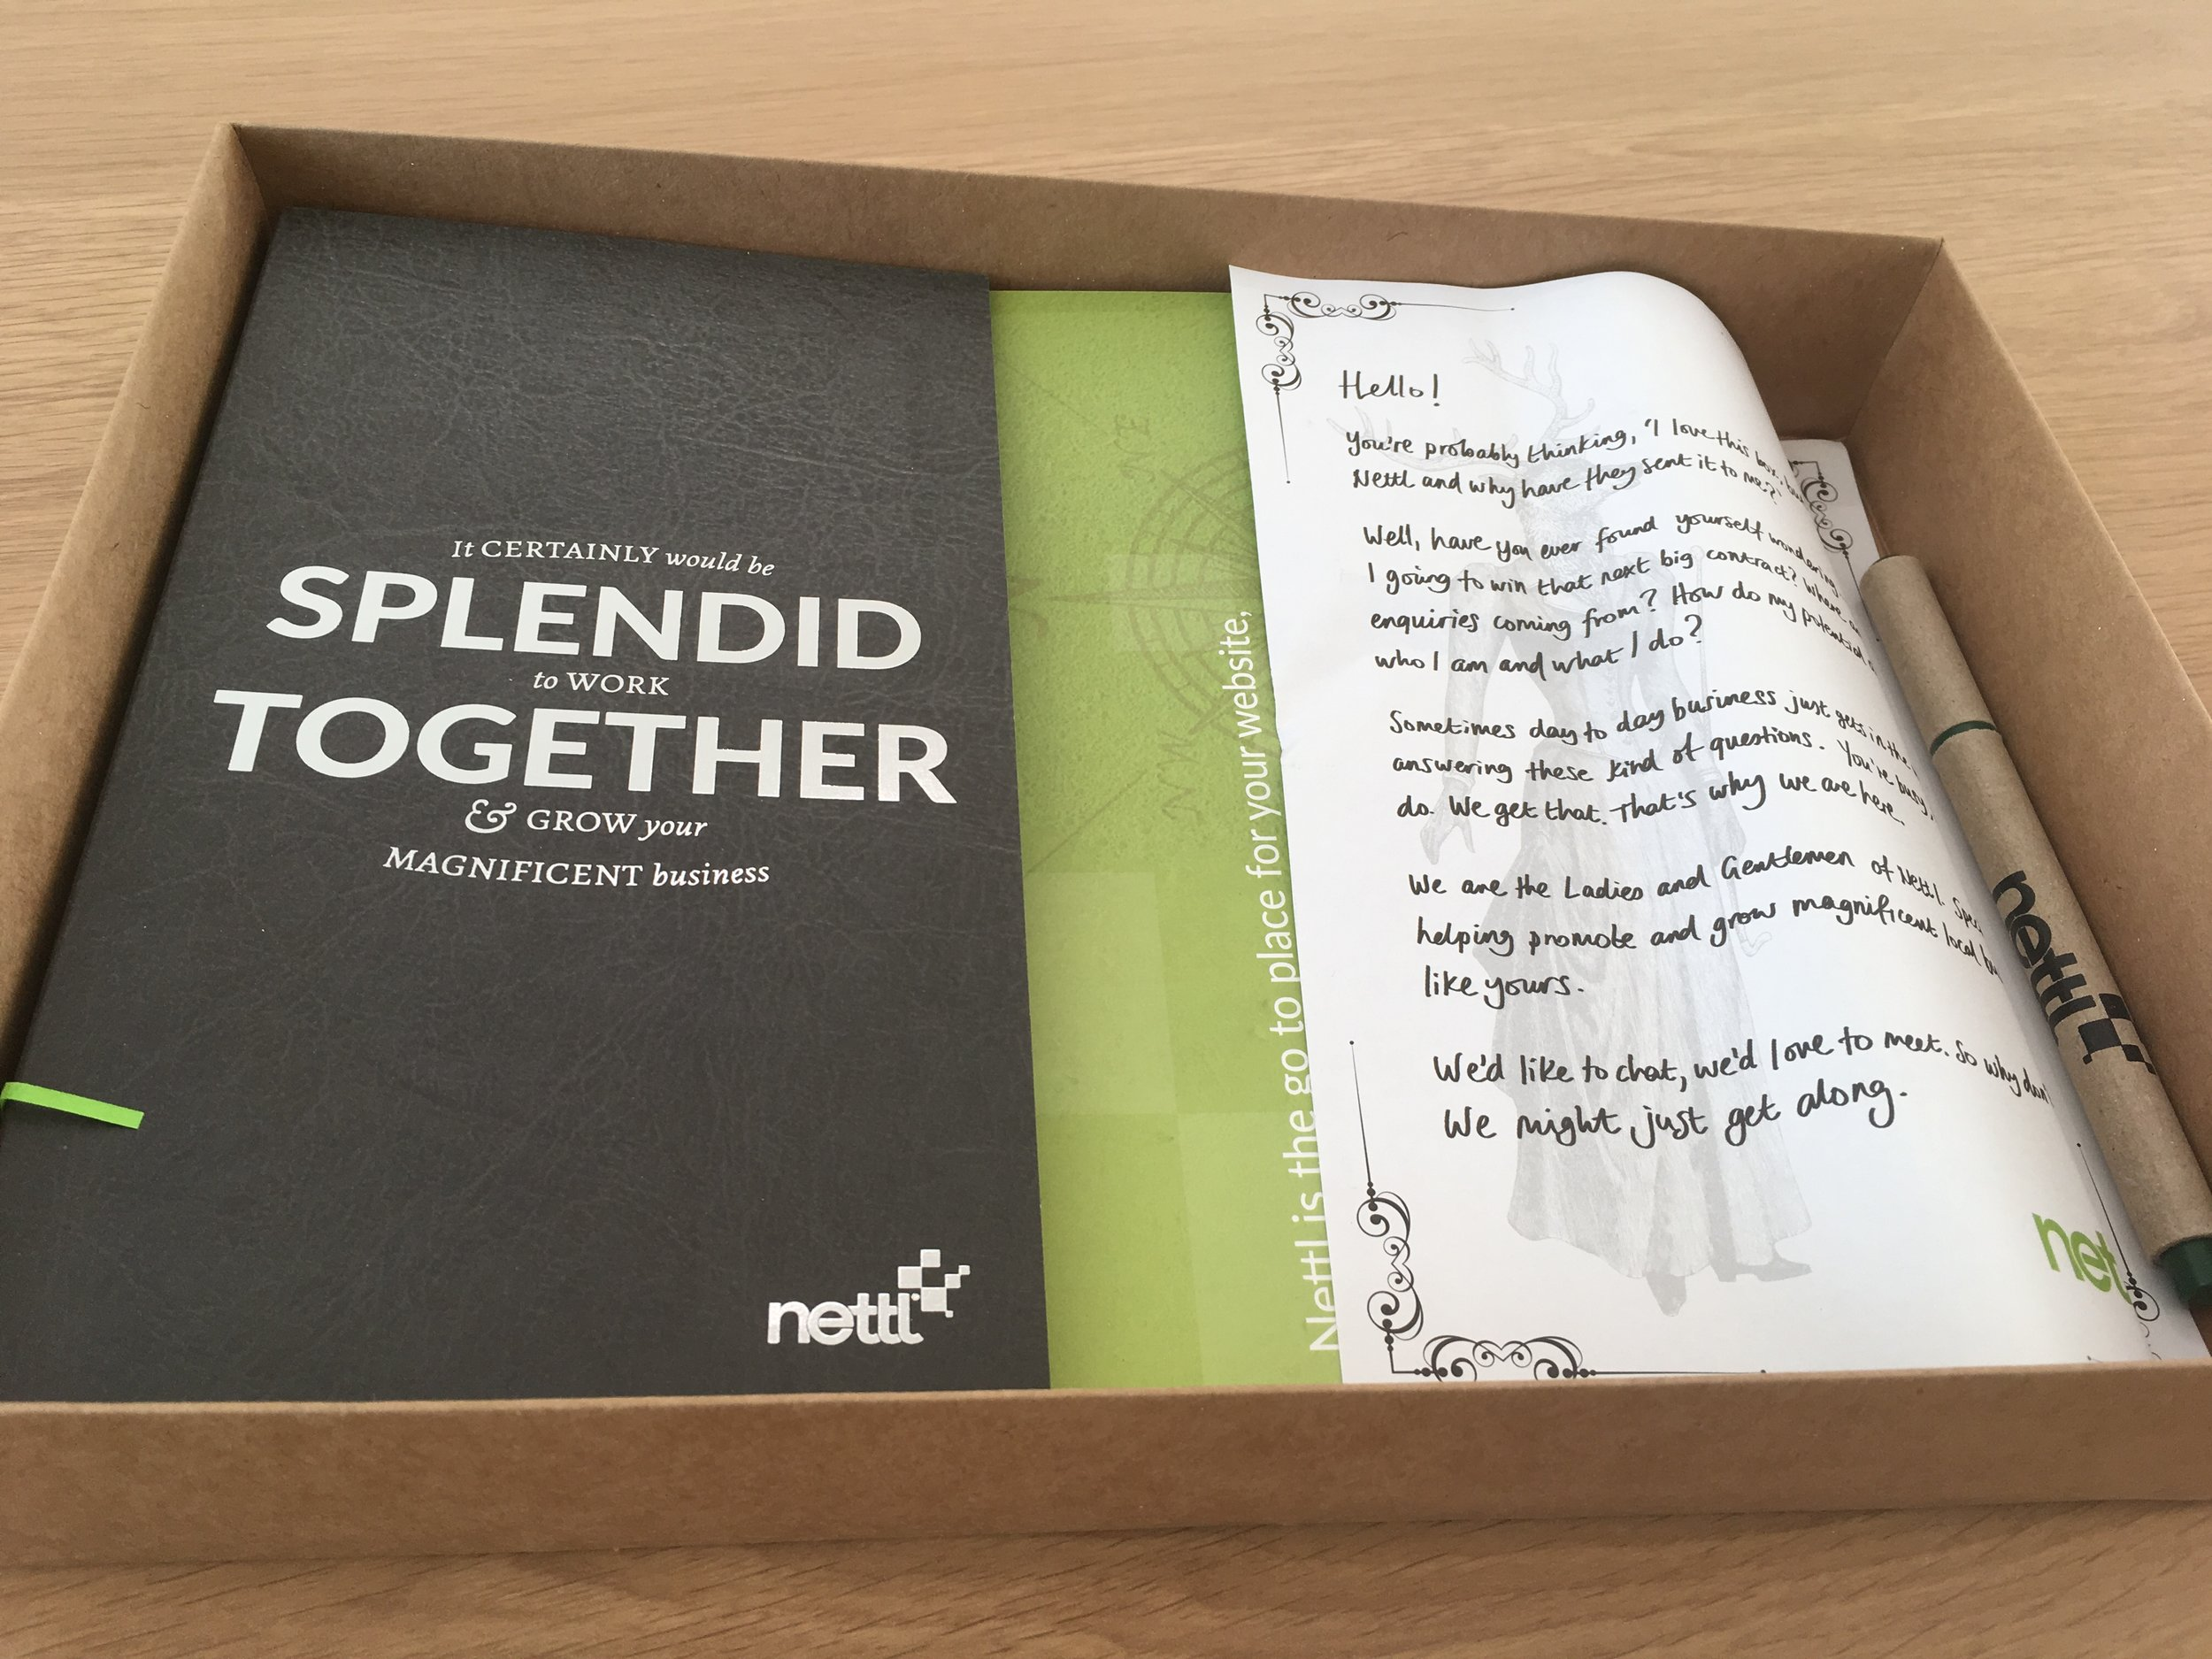 nettl definitely won the award for most beautiful, & personable, goodie-box.